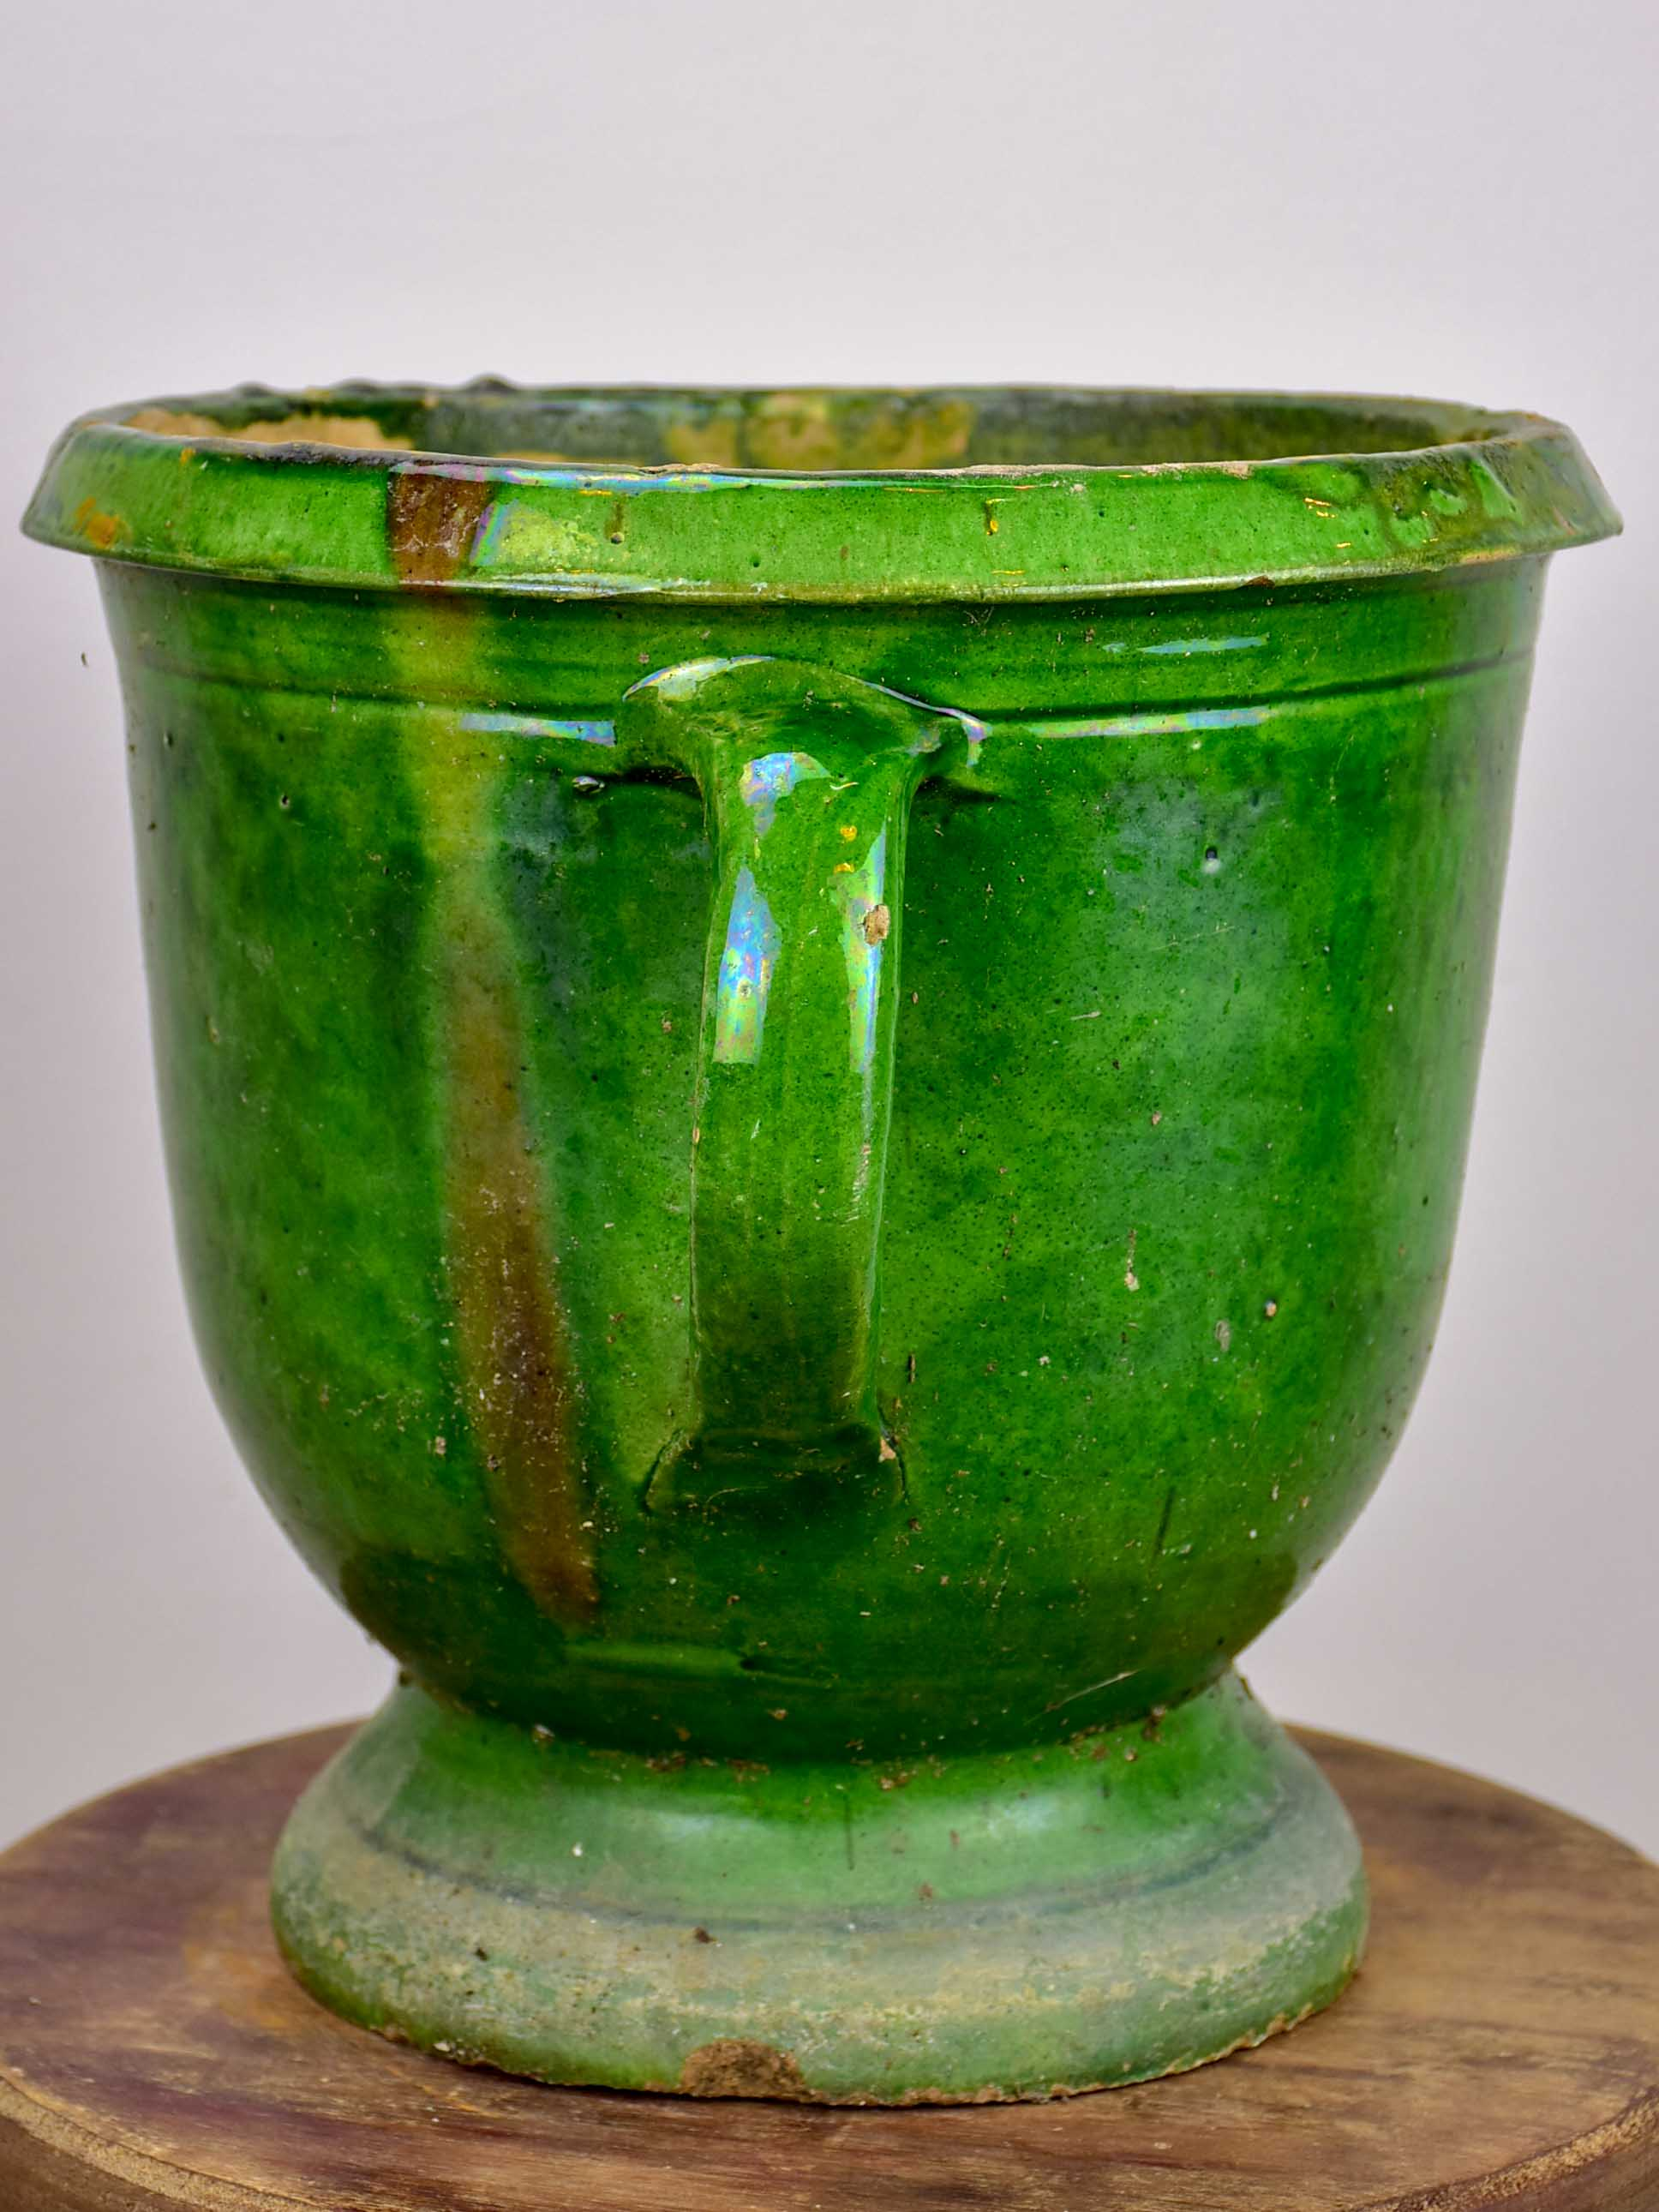 Castelnaudary antique green garden pot - 11""